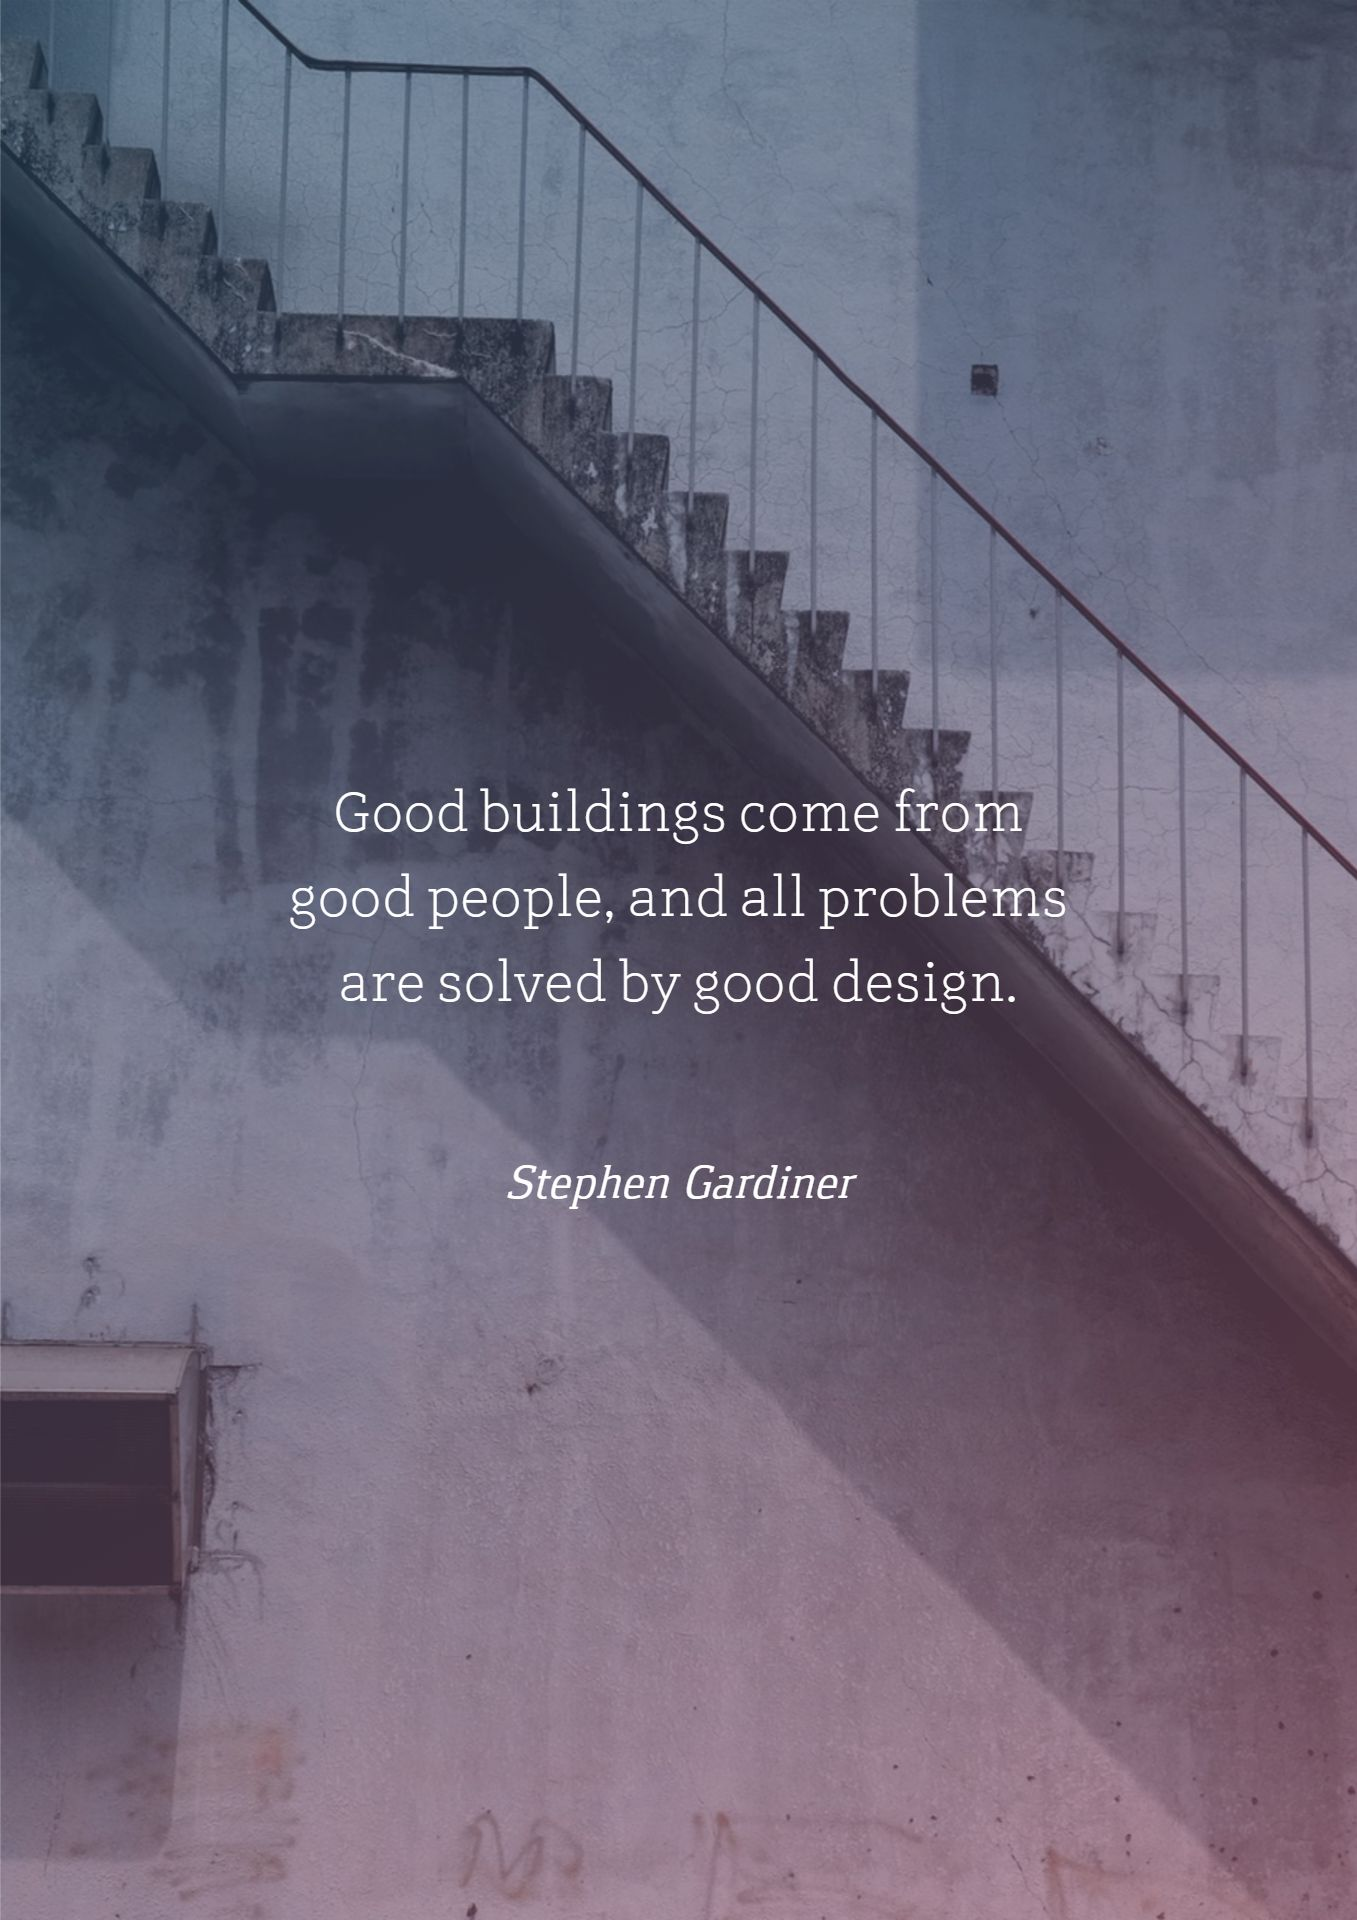 Architecture Quotes | Quotes About Architecture Good Buildings Come From Good People